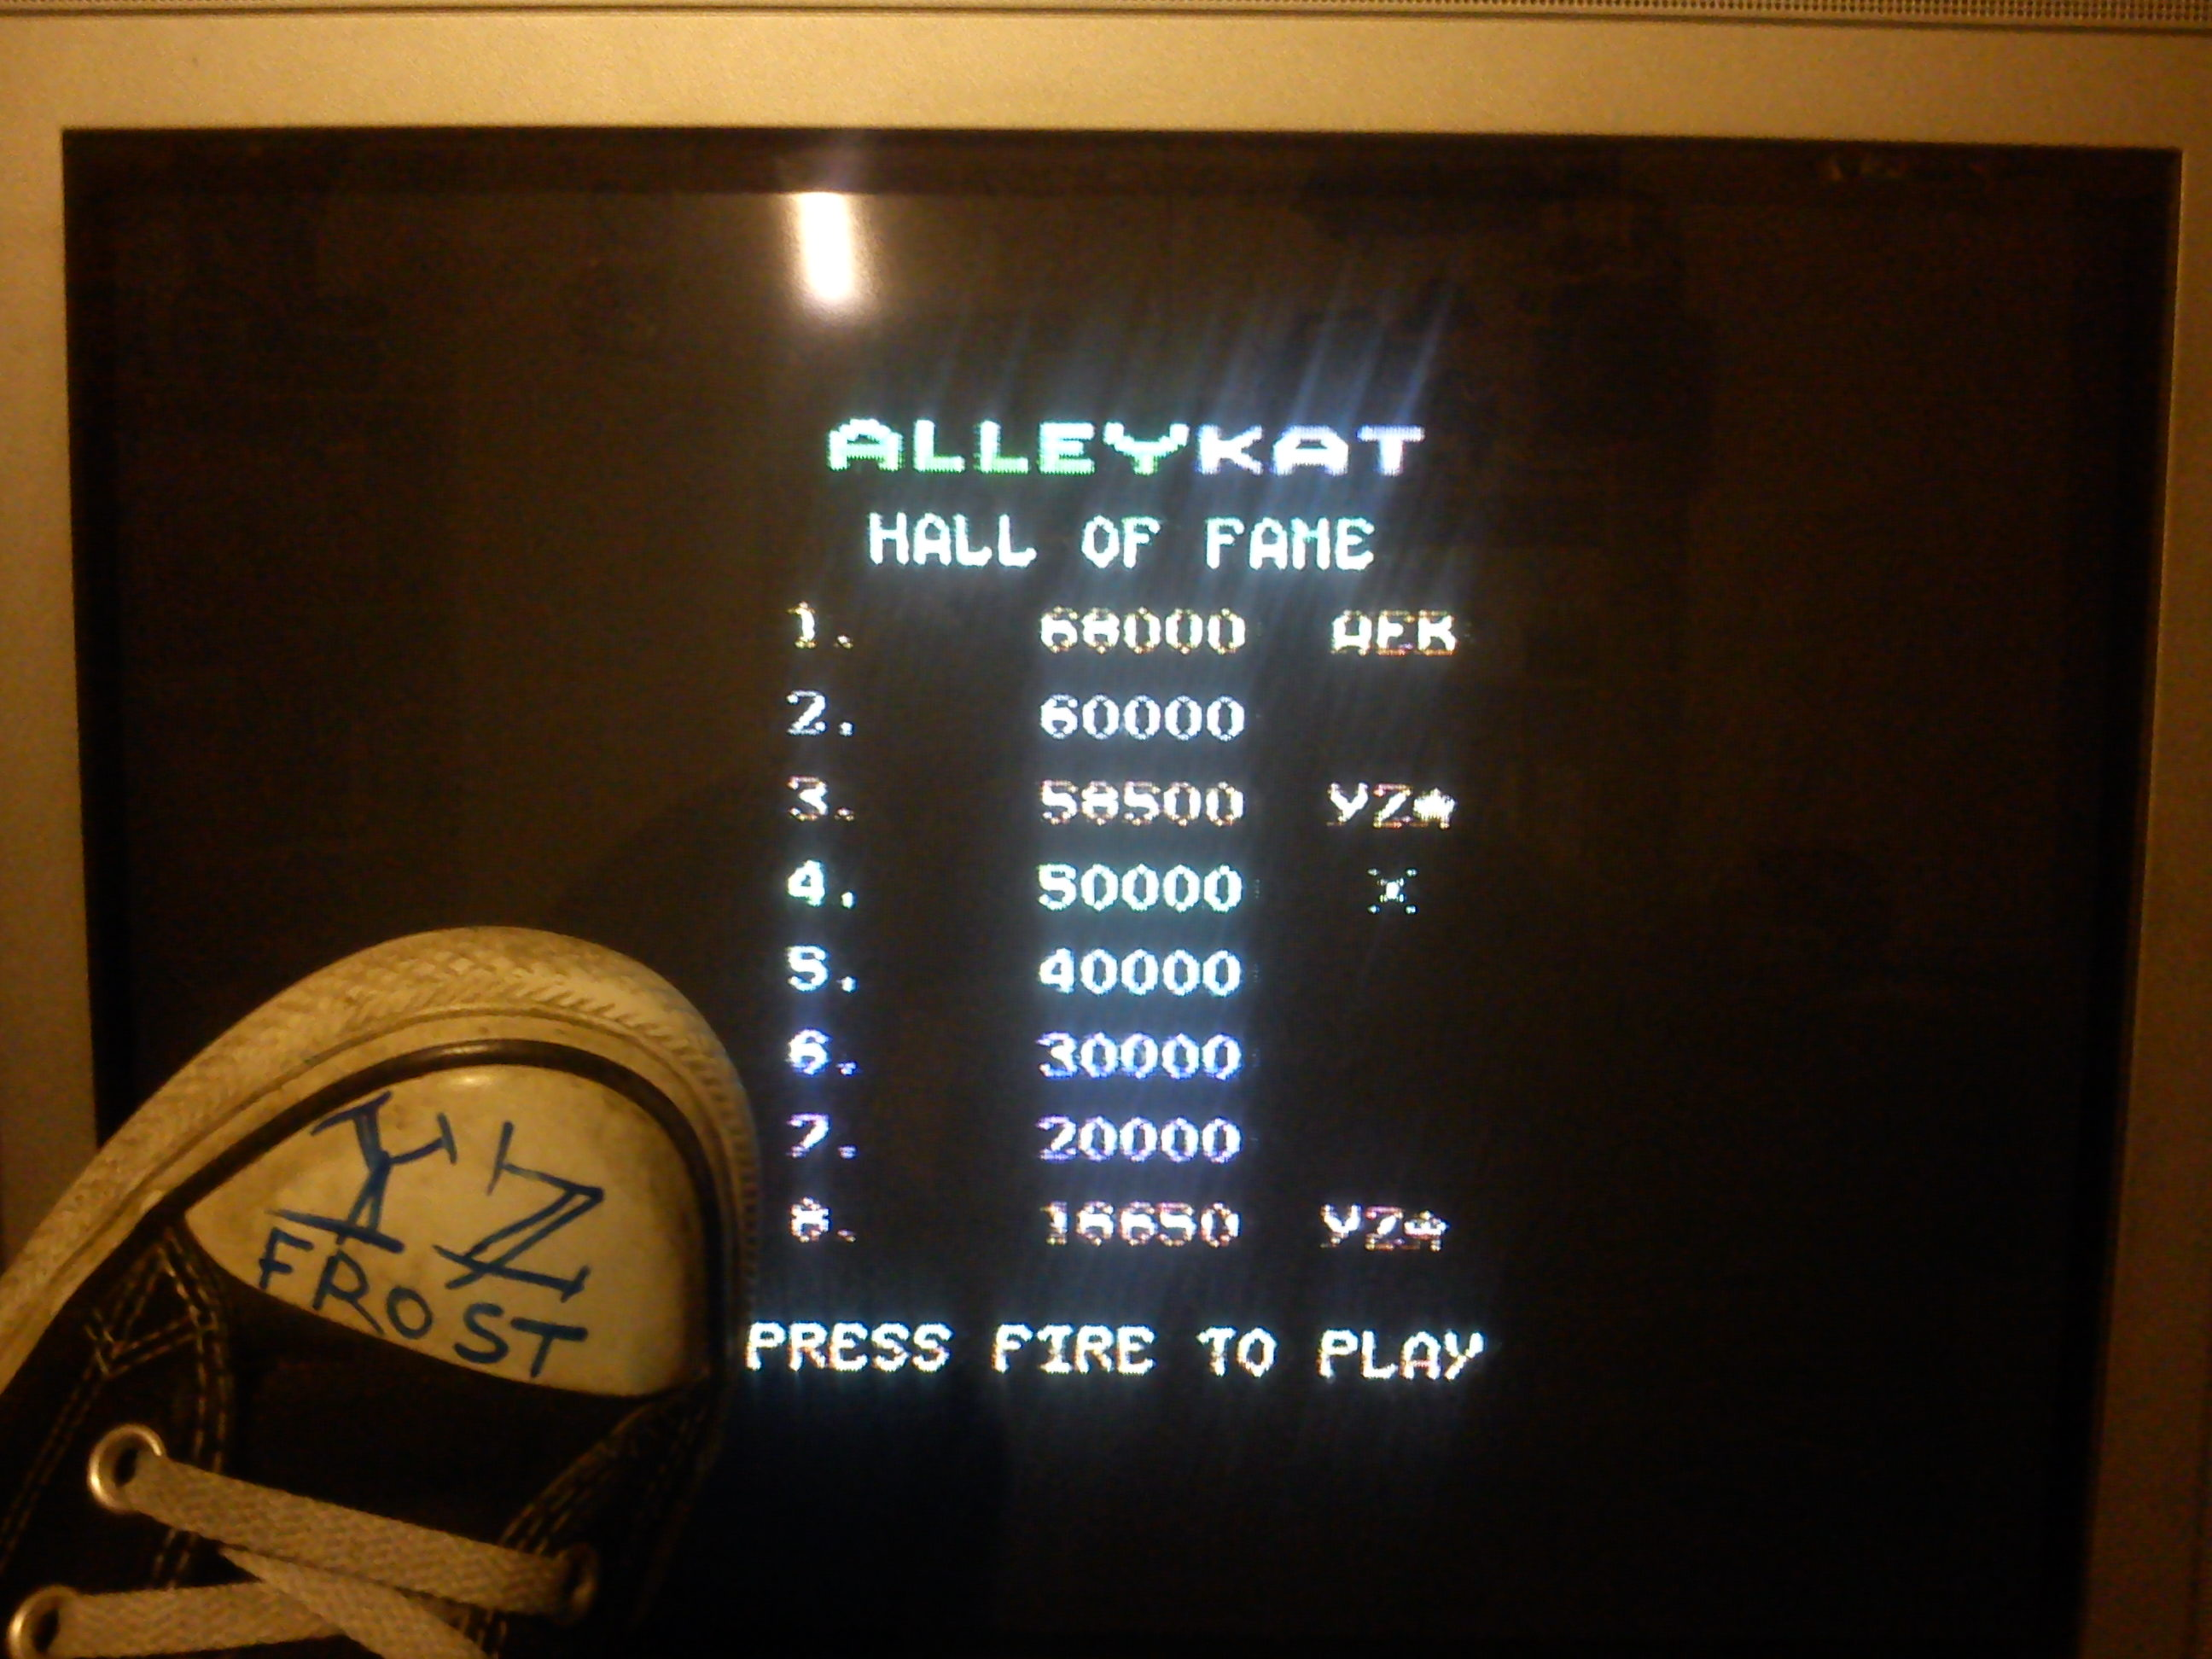 Fr0st: Alleykat [C64 mode] (Commodore 64) 58,500 points on 2014-11-28 16:16:28